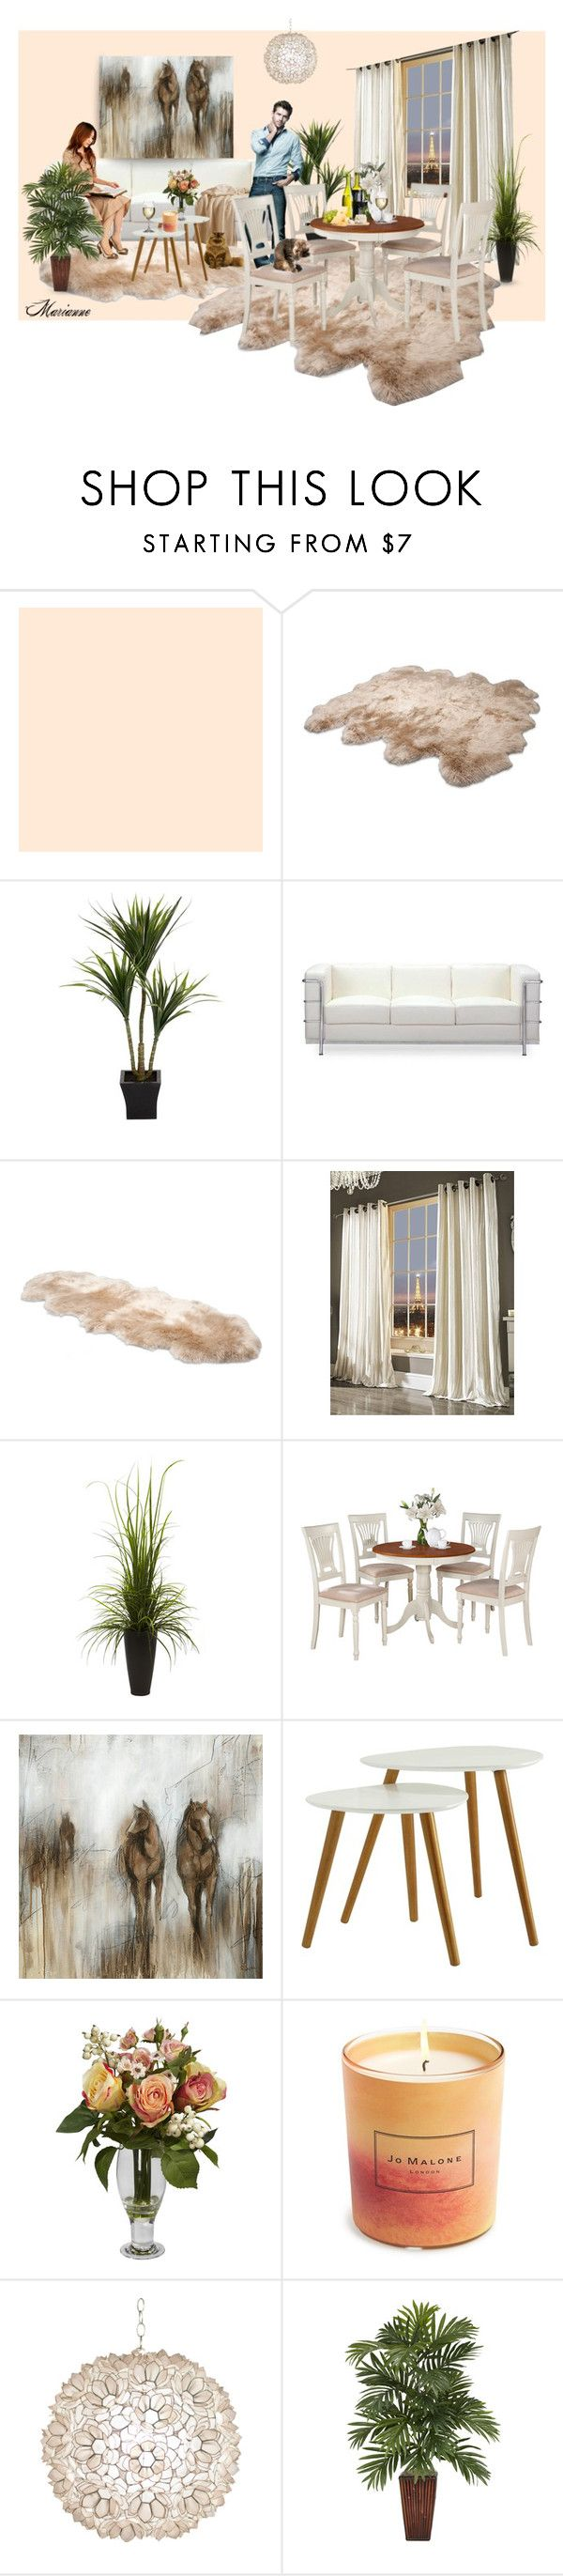 """Home 2"" by marianne-spiessens on Polyvore featuring interior, interiors, interior design, home, home decor, interior decorating, UGG Australia, Zuo, Kylie Minogue and Nearly Natural"